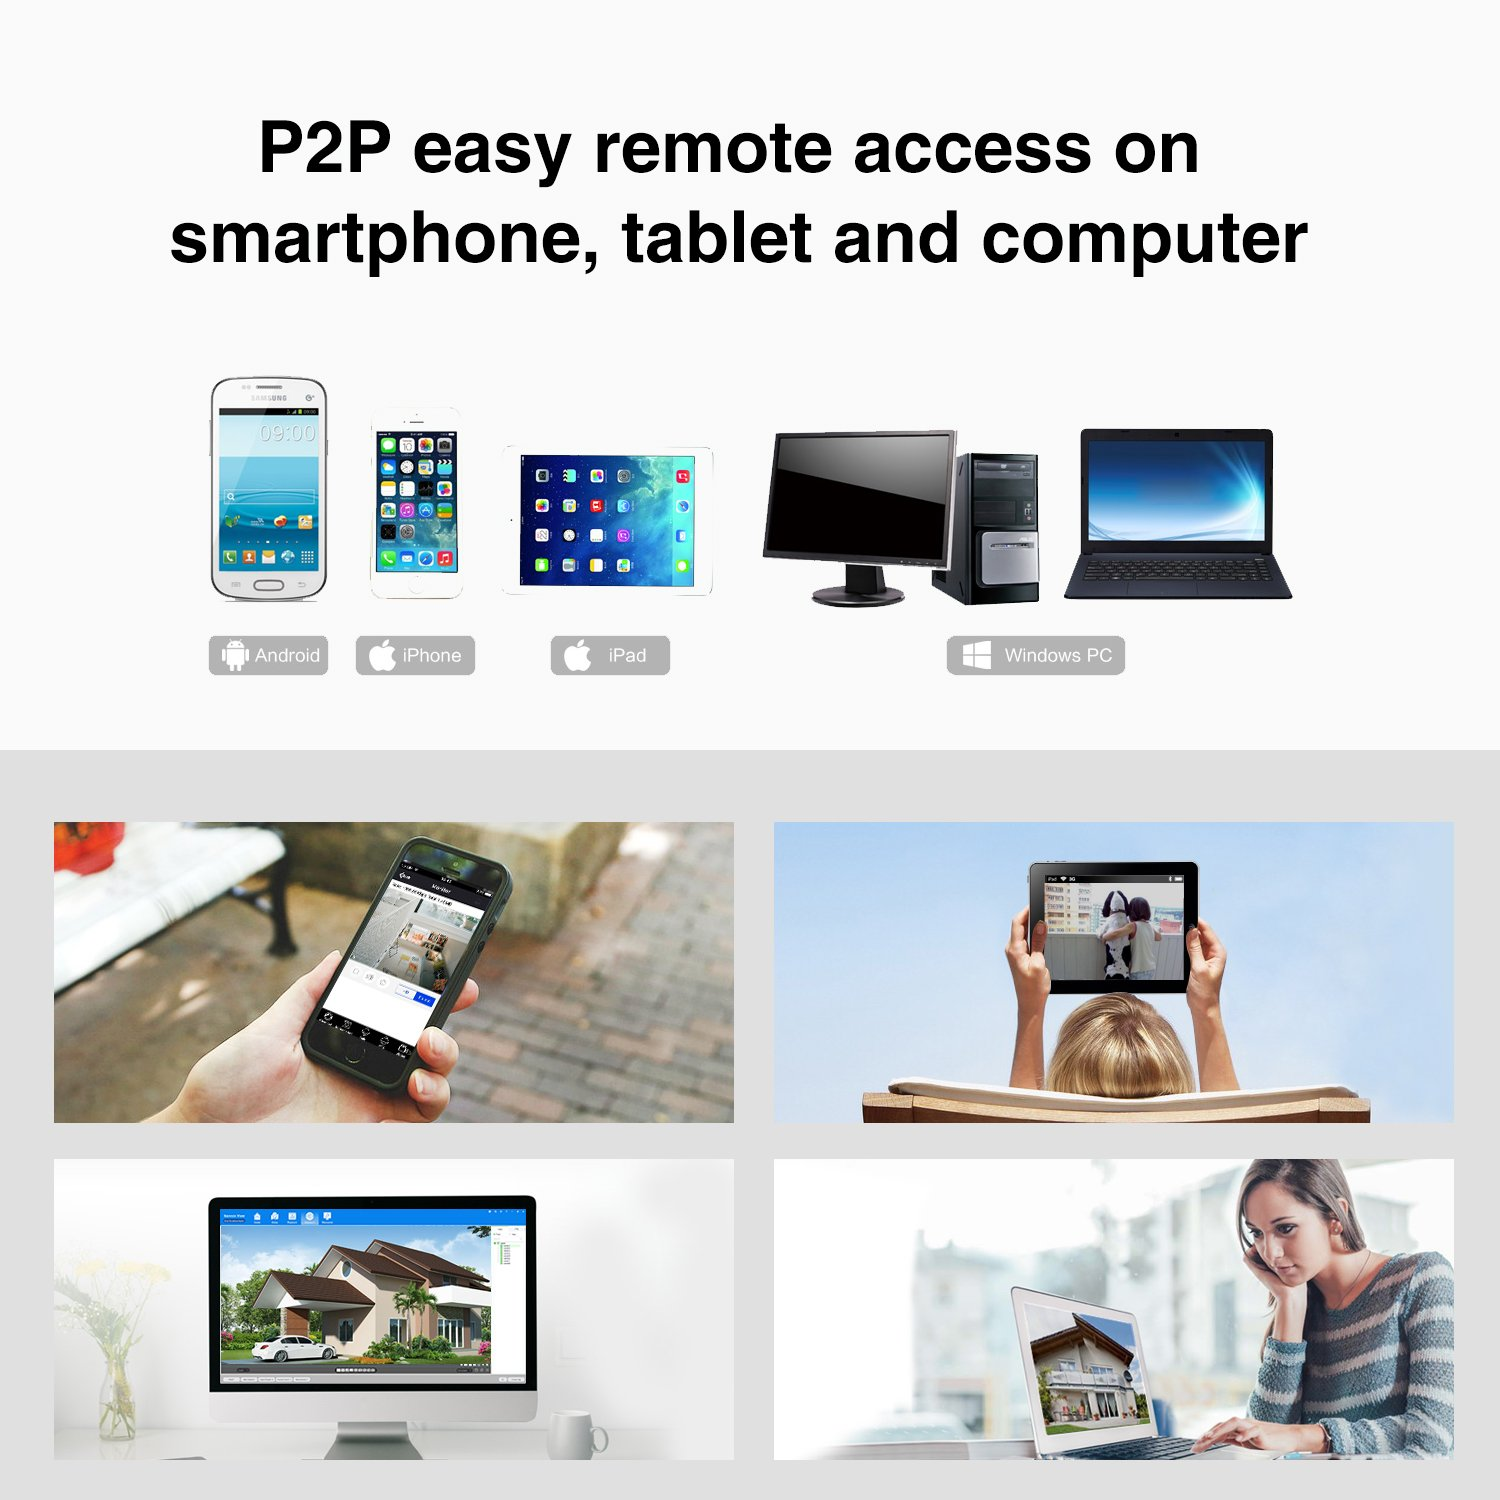 Ture PoE SANNCE 8 Channel 4.0MP 2560 * 1440 APP/&Email Alert 1080P VGA/&HDMI Output H.265 Home NVR CCTV System with Easy Remote Access 8 2.0MP Outdoor IP Camera Kits,IP66 Metal Casing NO HDD